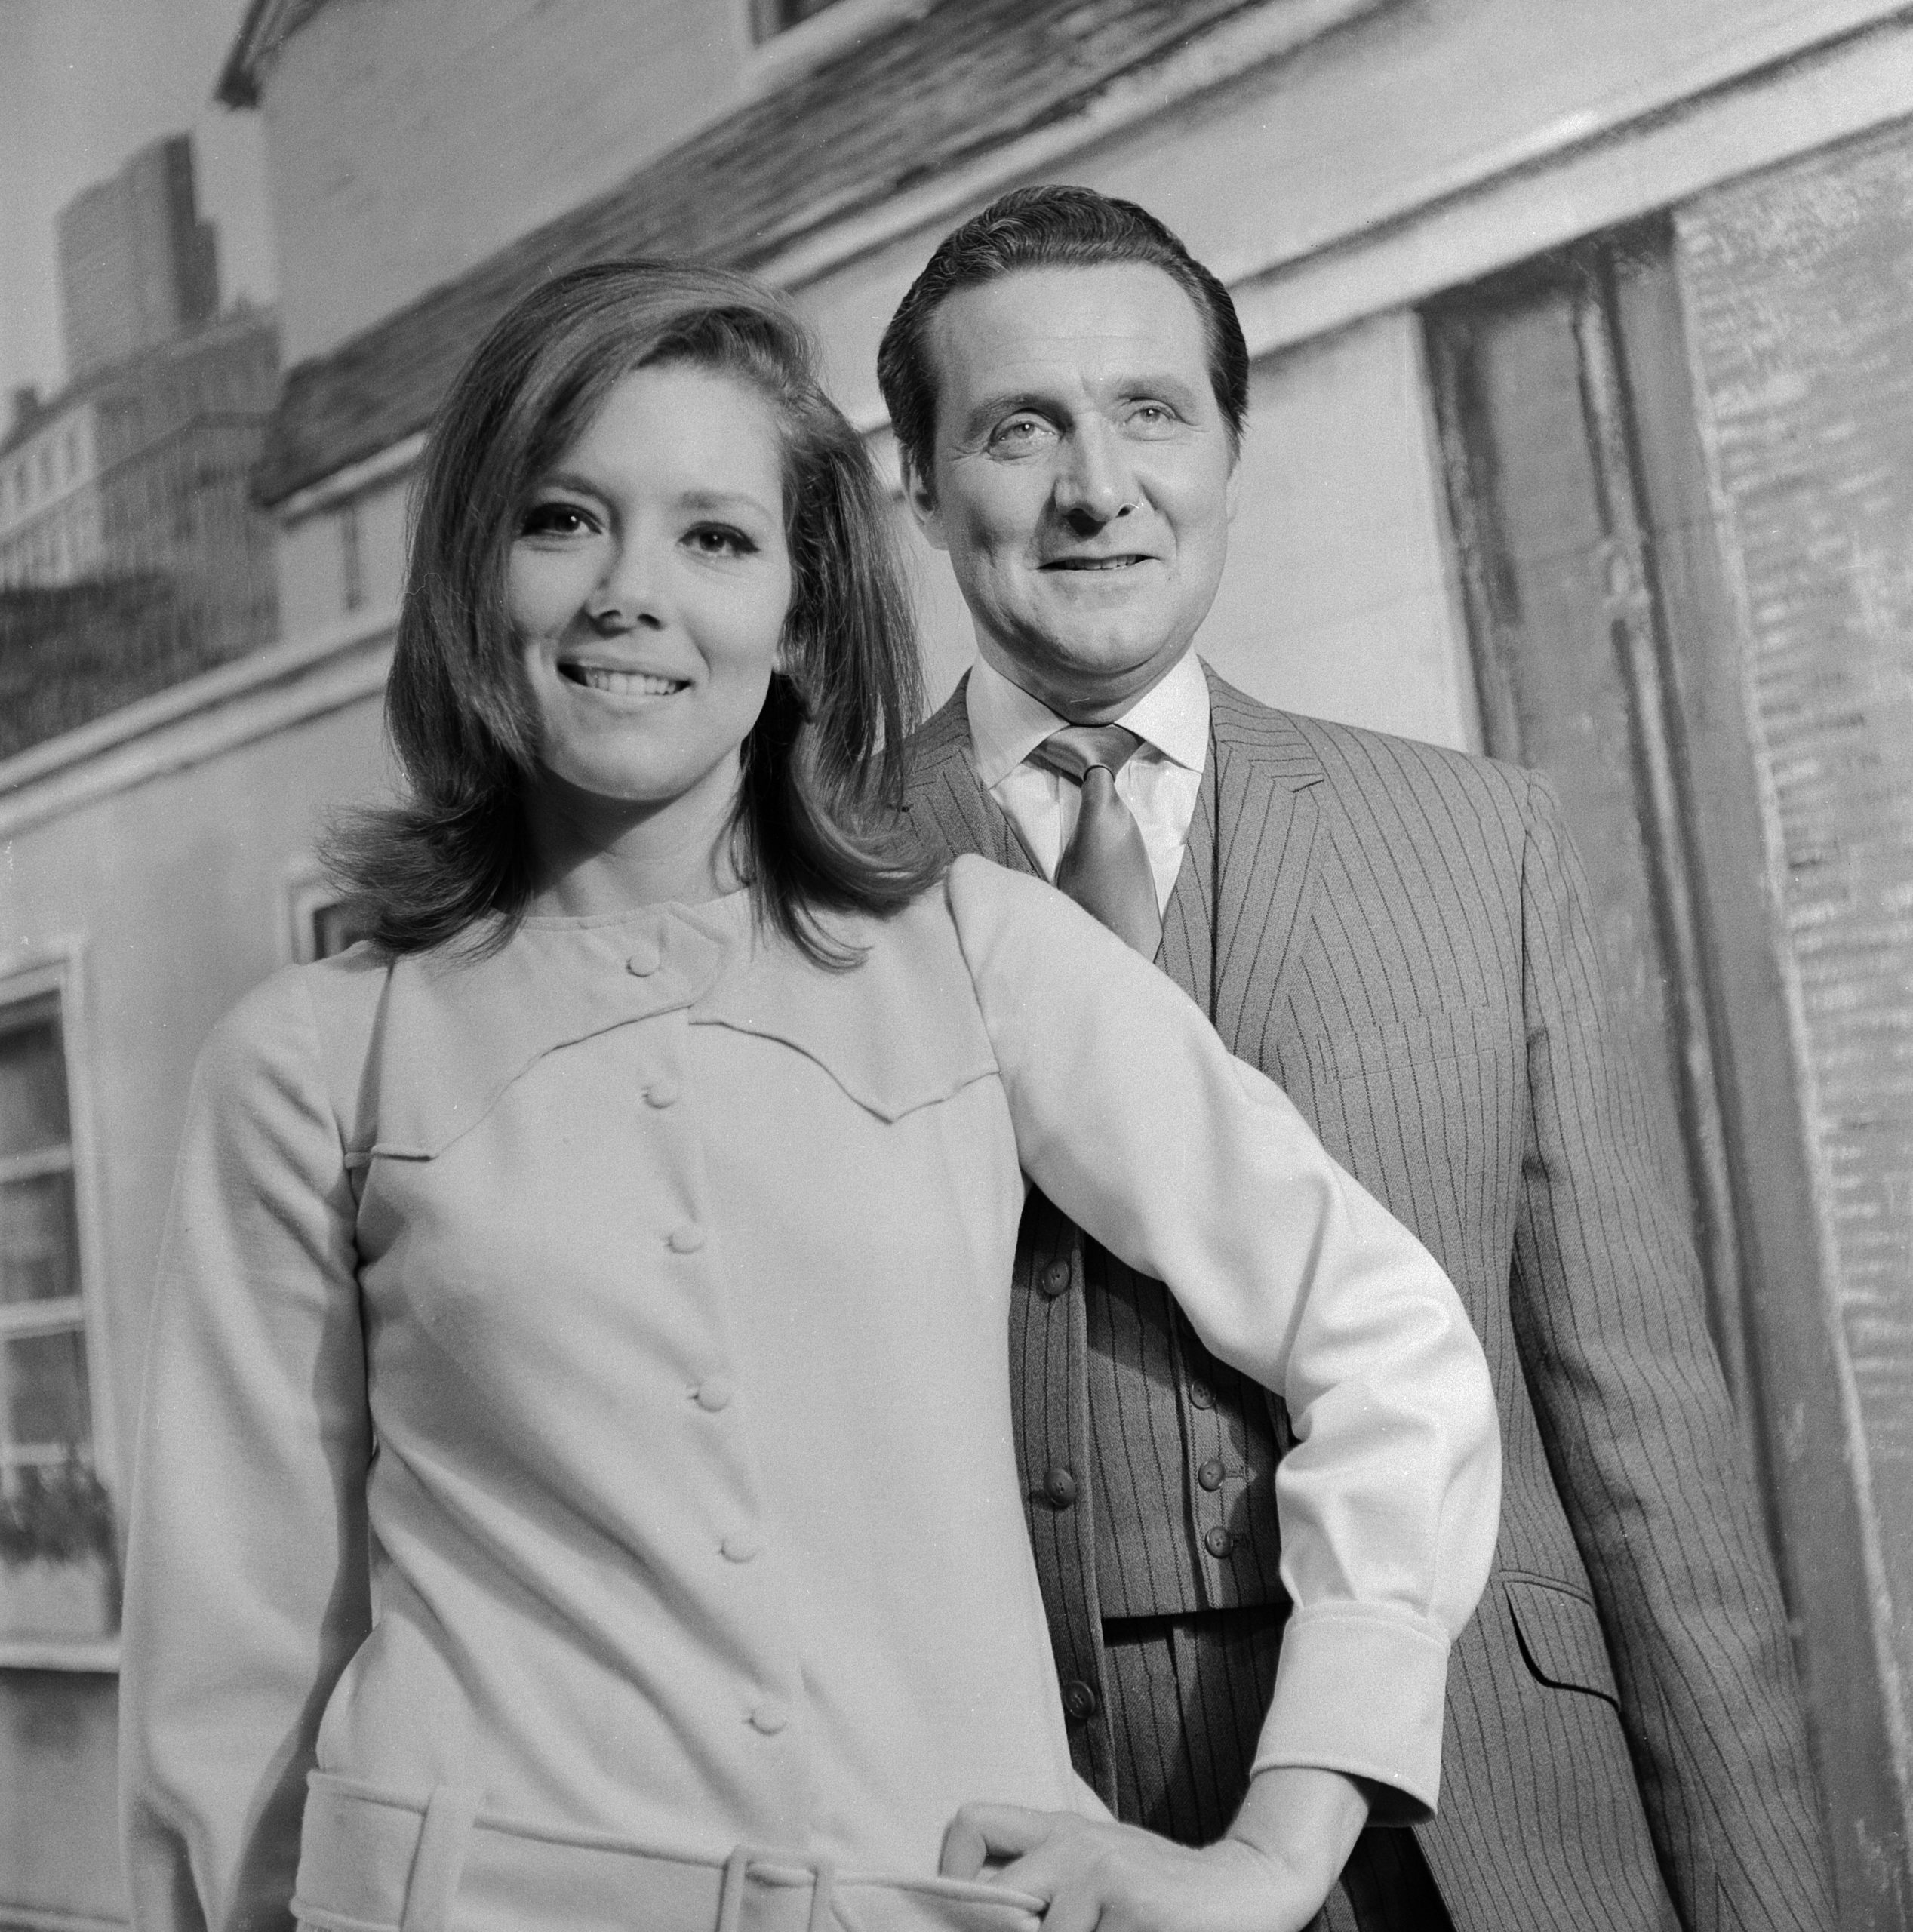 Murió a los 82 años Diana Rigg, actriz de 'Game of Thrones' y 'The Avengers'